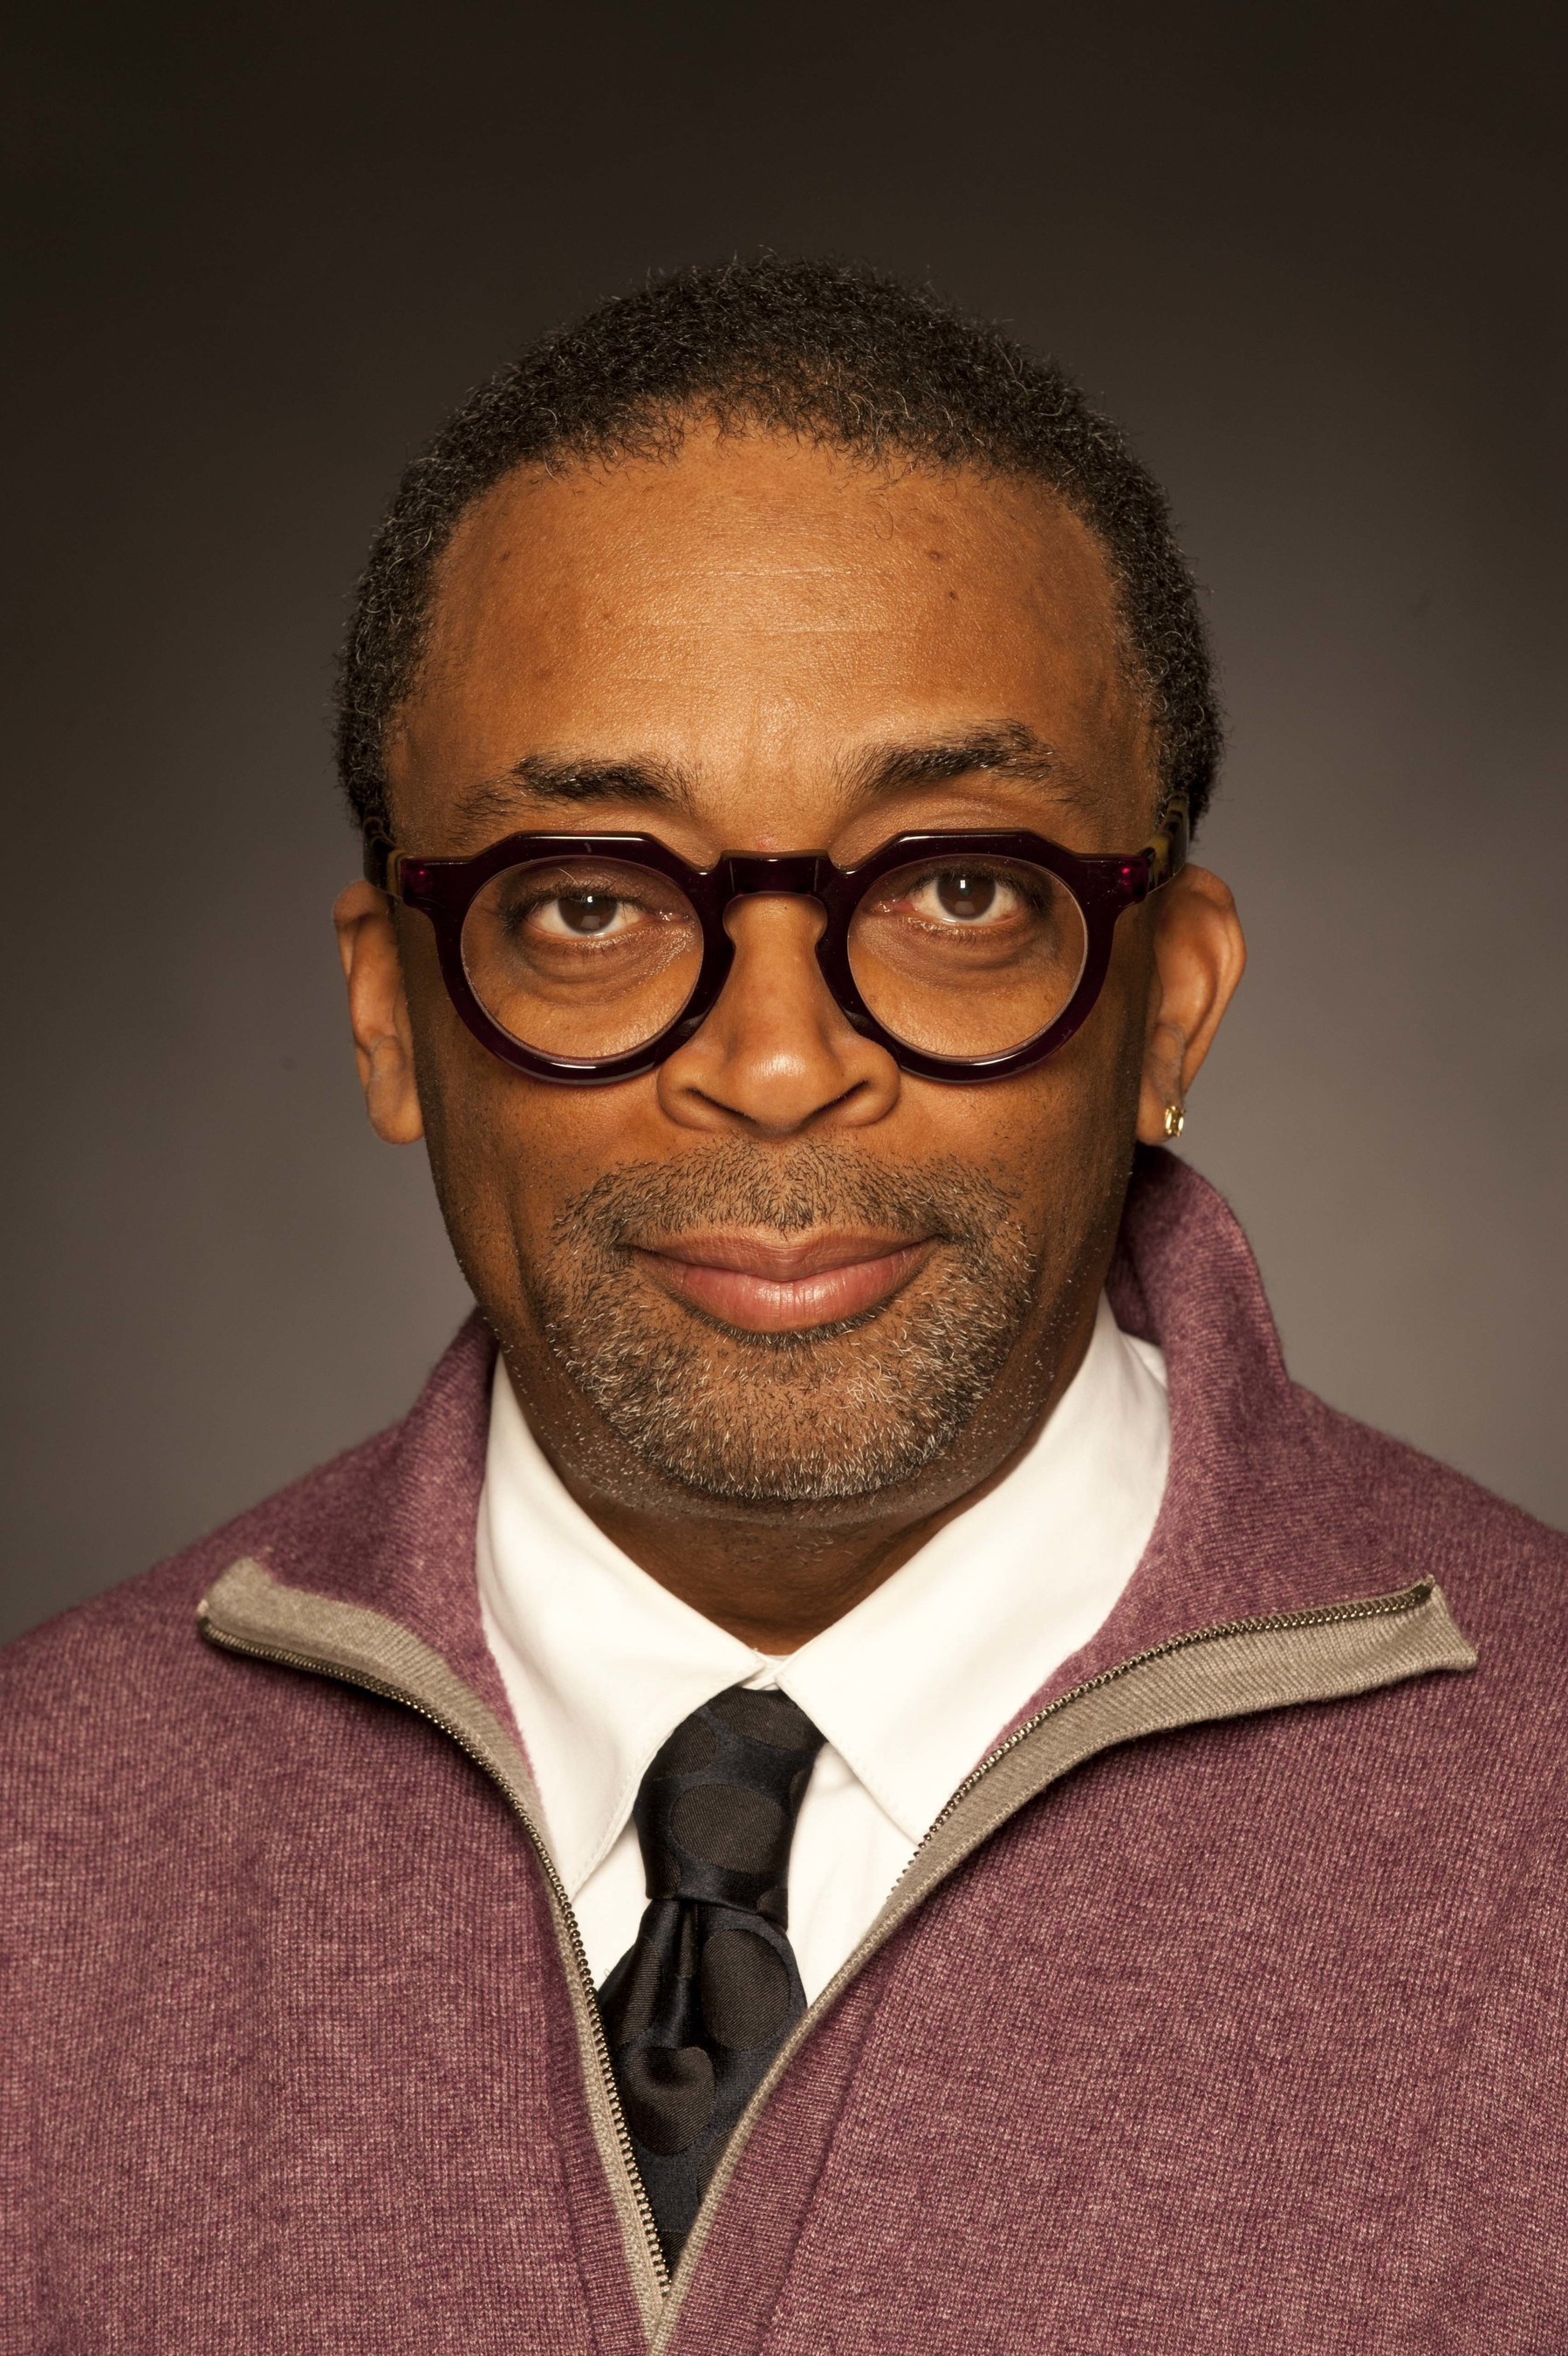 Academy' Award Nominated Filmmaker Spike Lee Announced As Keynoter For The 29th Annual NAMIC Conference